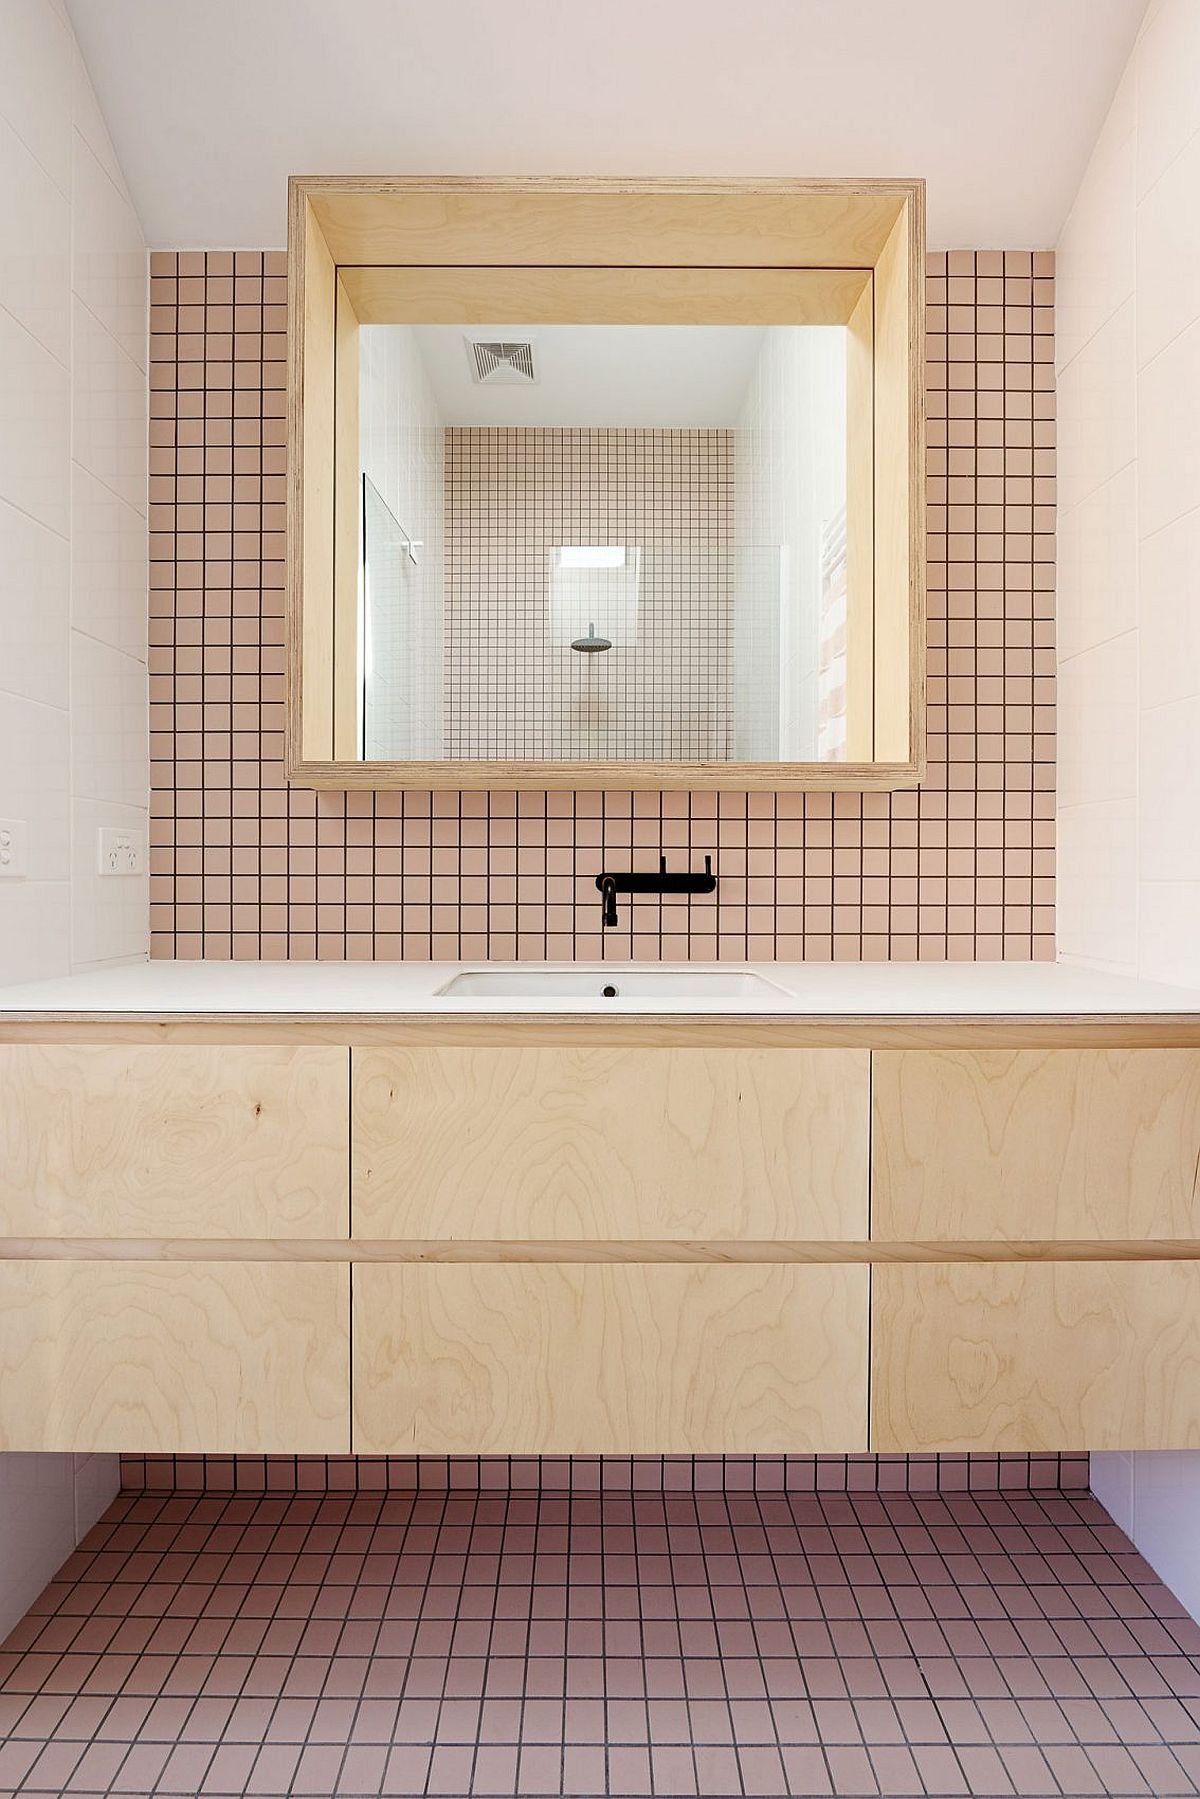 Tiles add smart geometric pattern to the small bathroom